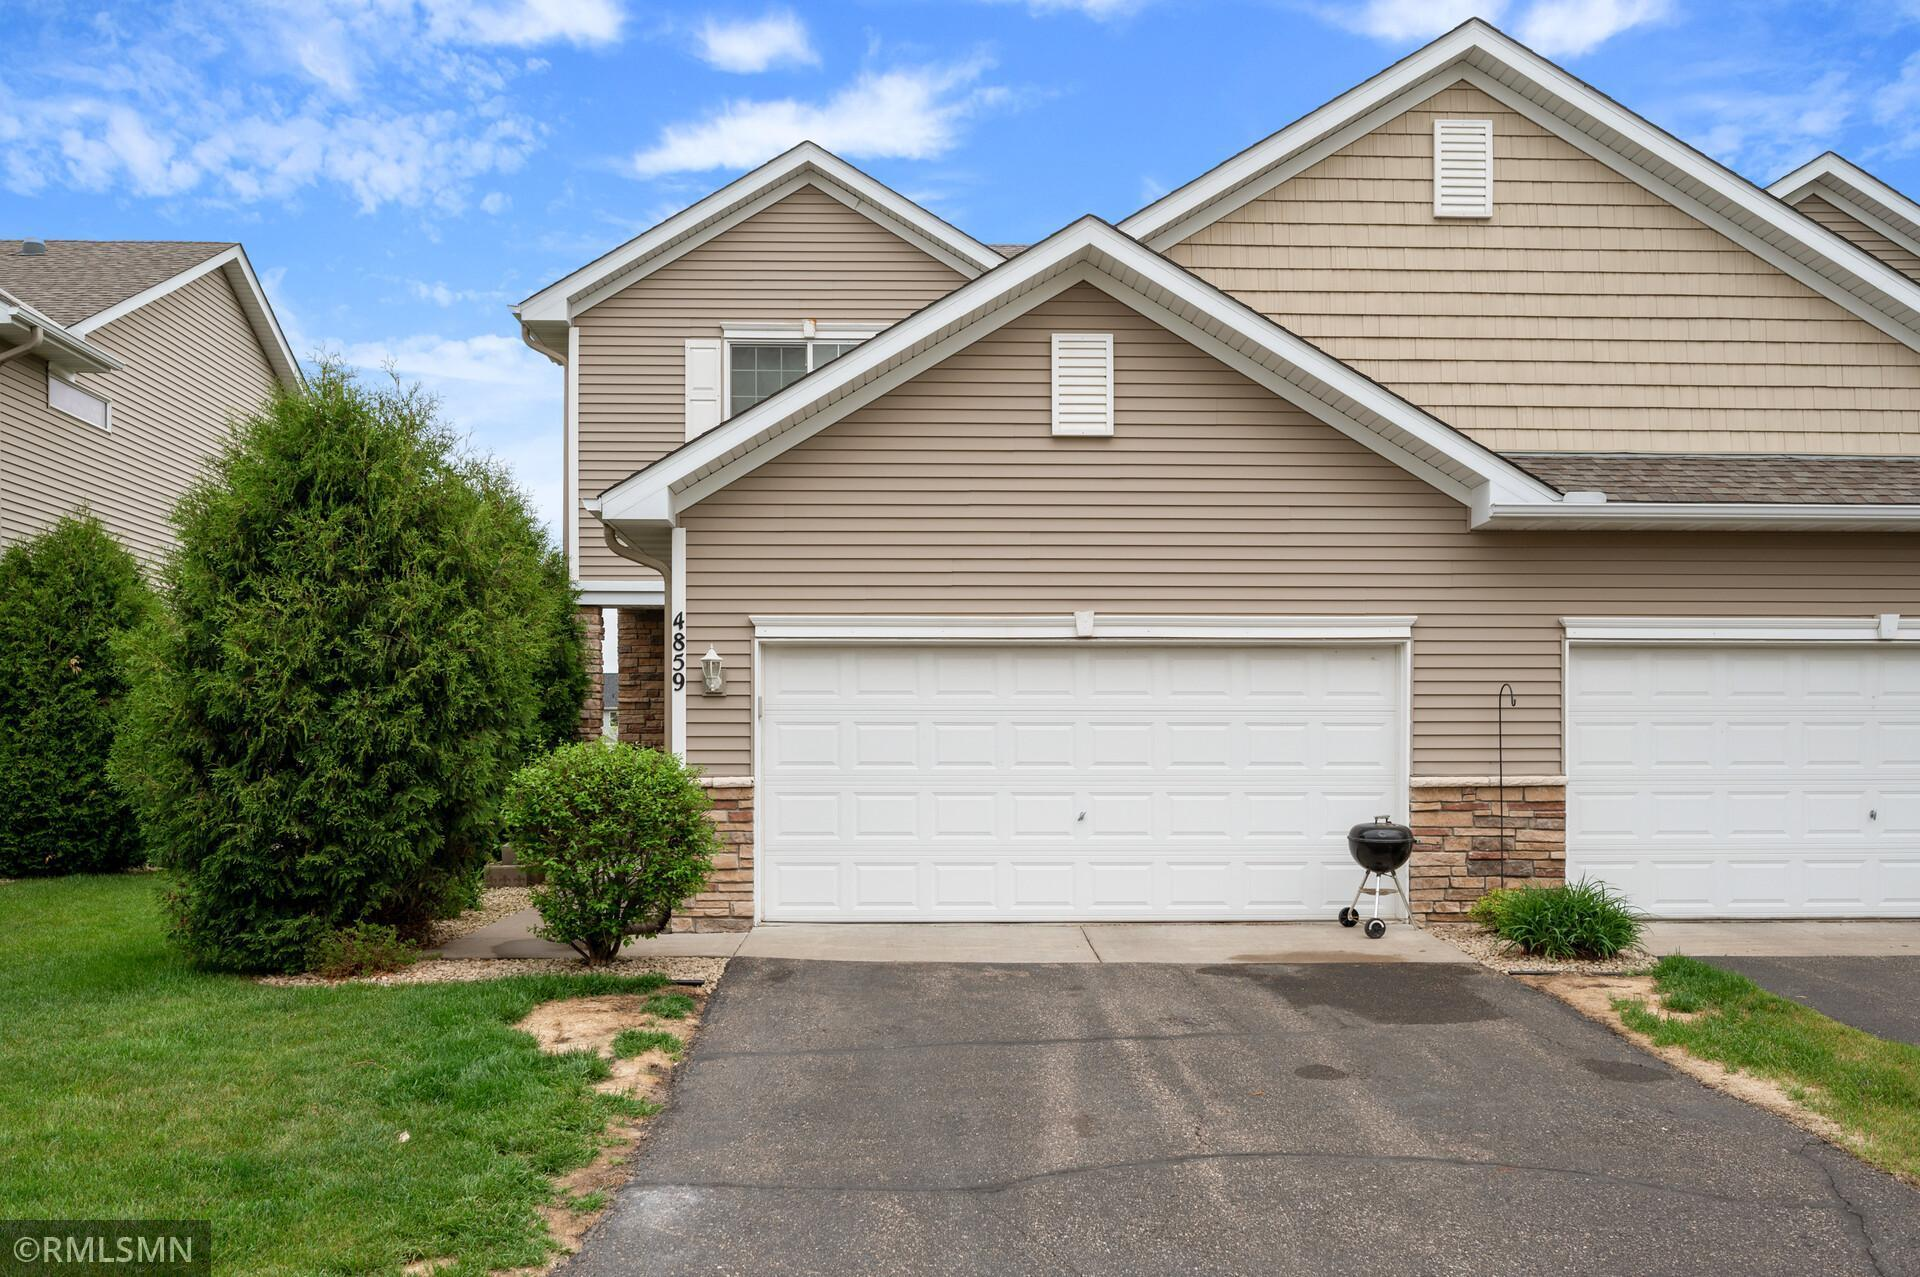 4859 200th Street N, Forest Lake MN 55025 - Photo 2